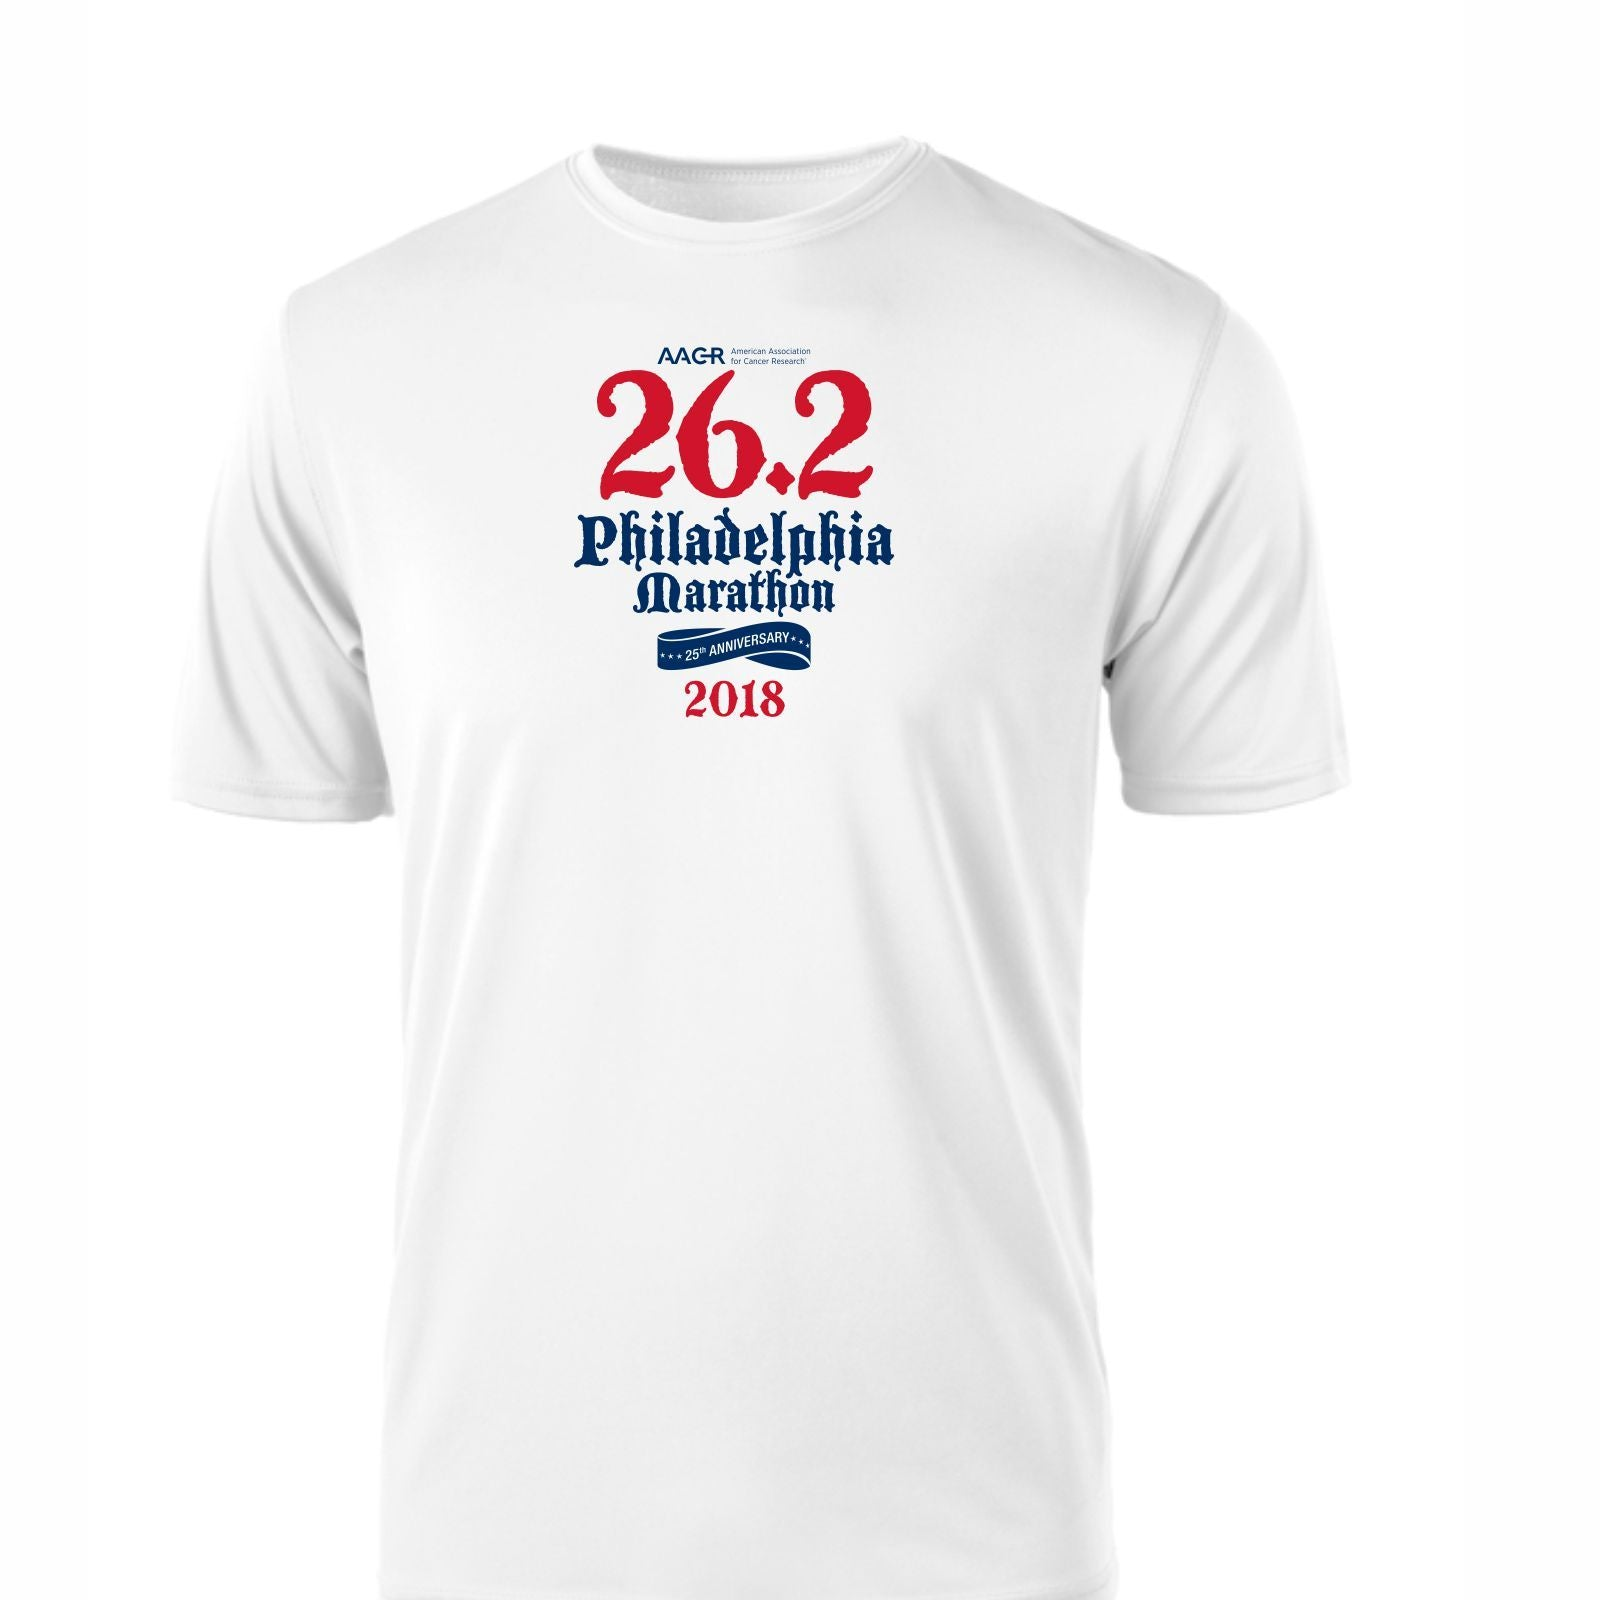 AACR Philadelphia Marathon 'Directions 26.2' Men's SS Tech Tee - White